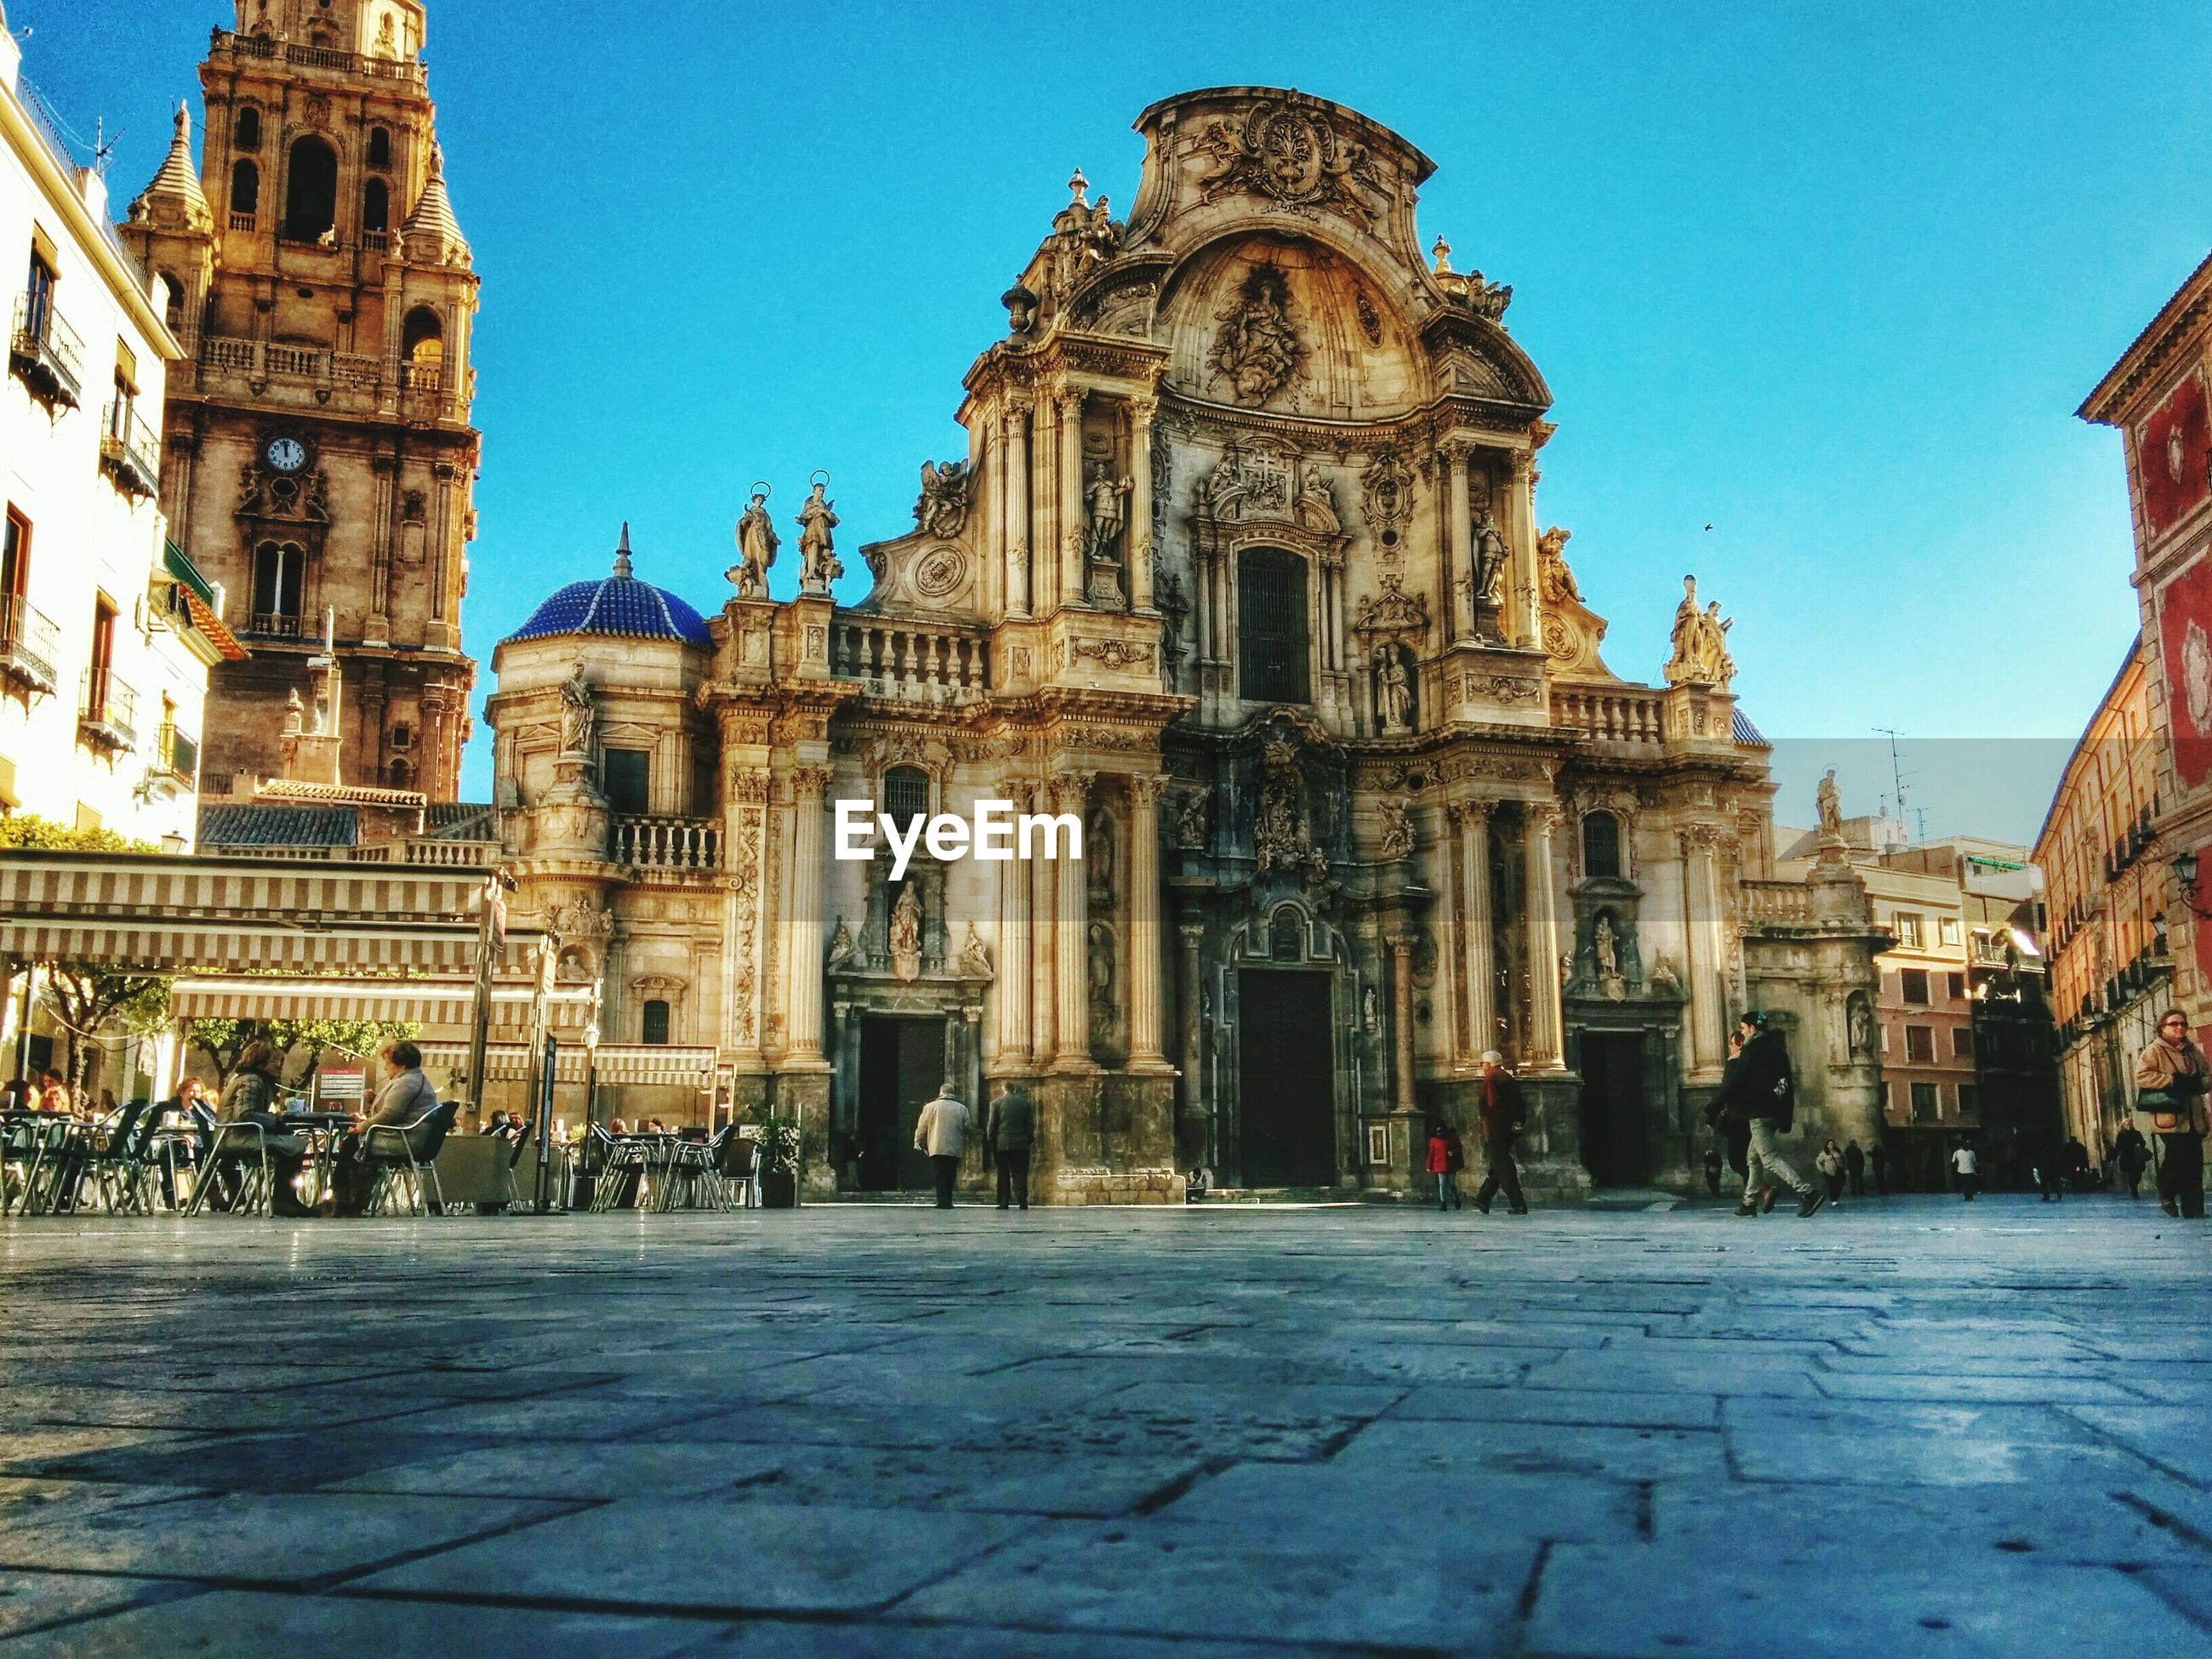 building exterior, architecture, built structure, religion, place of worship, spirituality, church, clear sky, blue, history, famous place, cathedral, travel destinations, low angle view, facade, tourism, travel, old